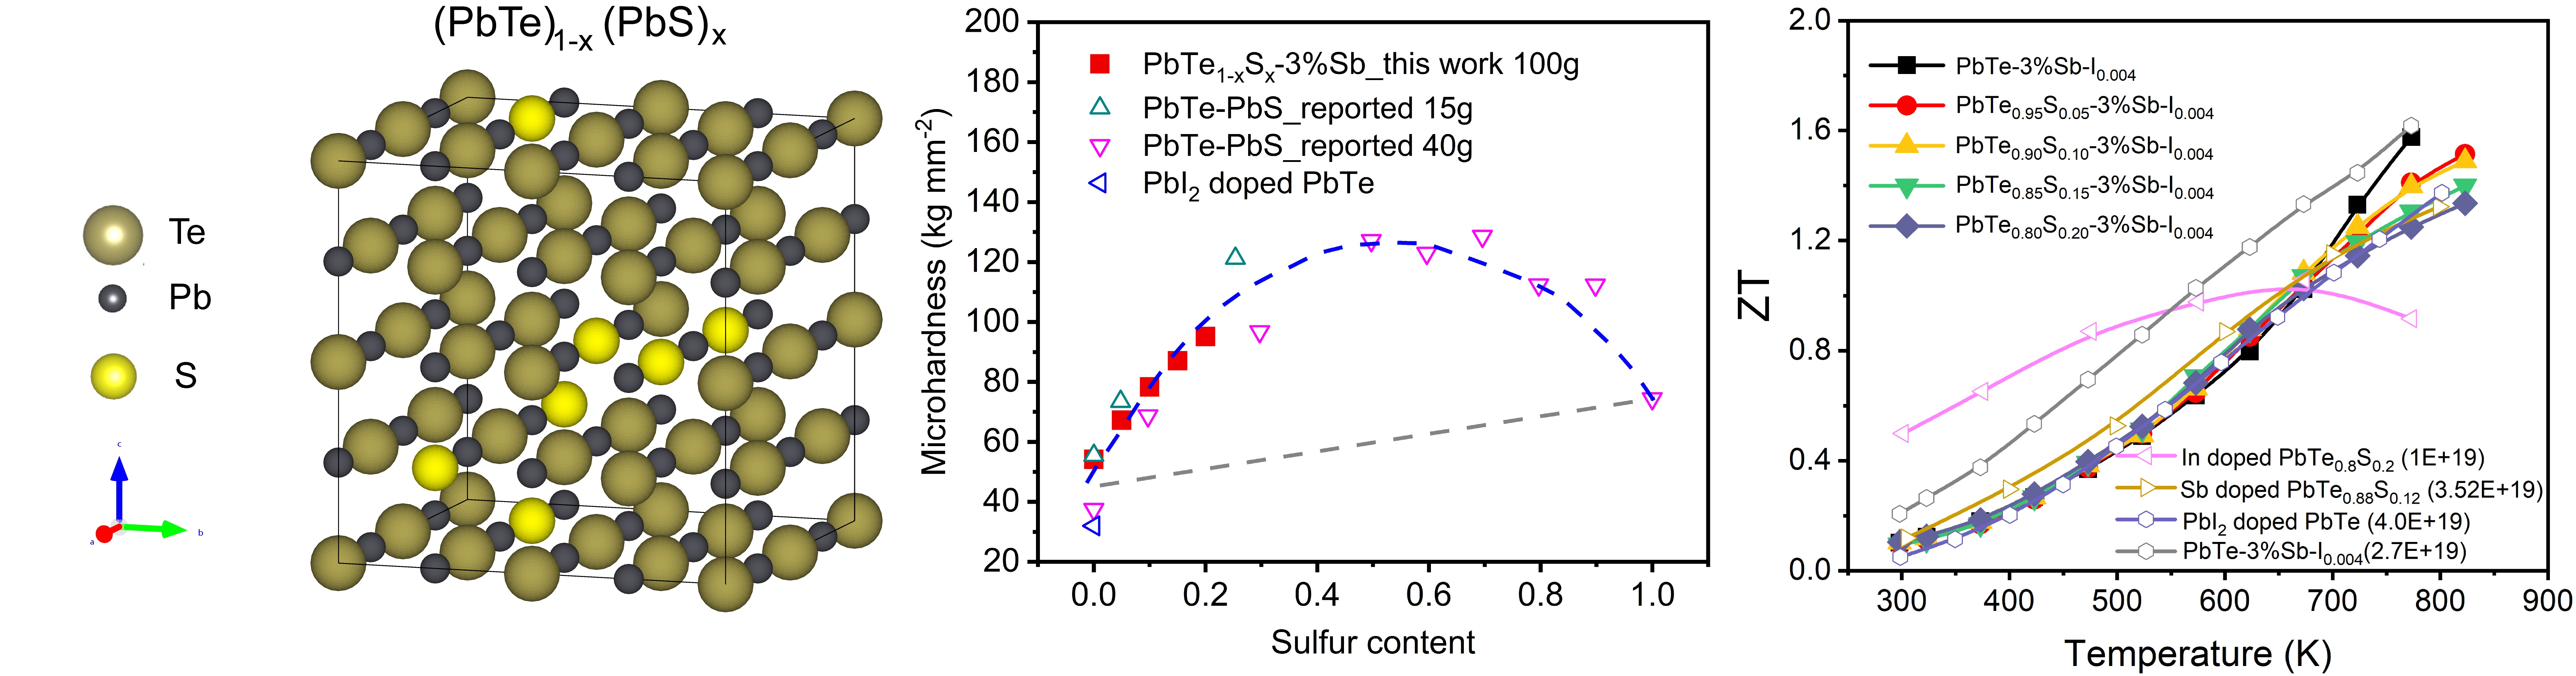 Thermoelectric material performance improves dramatically